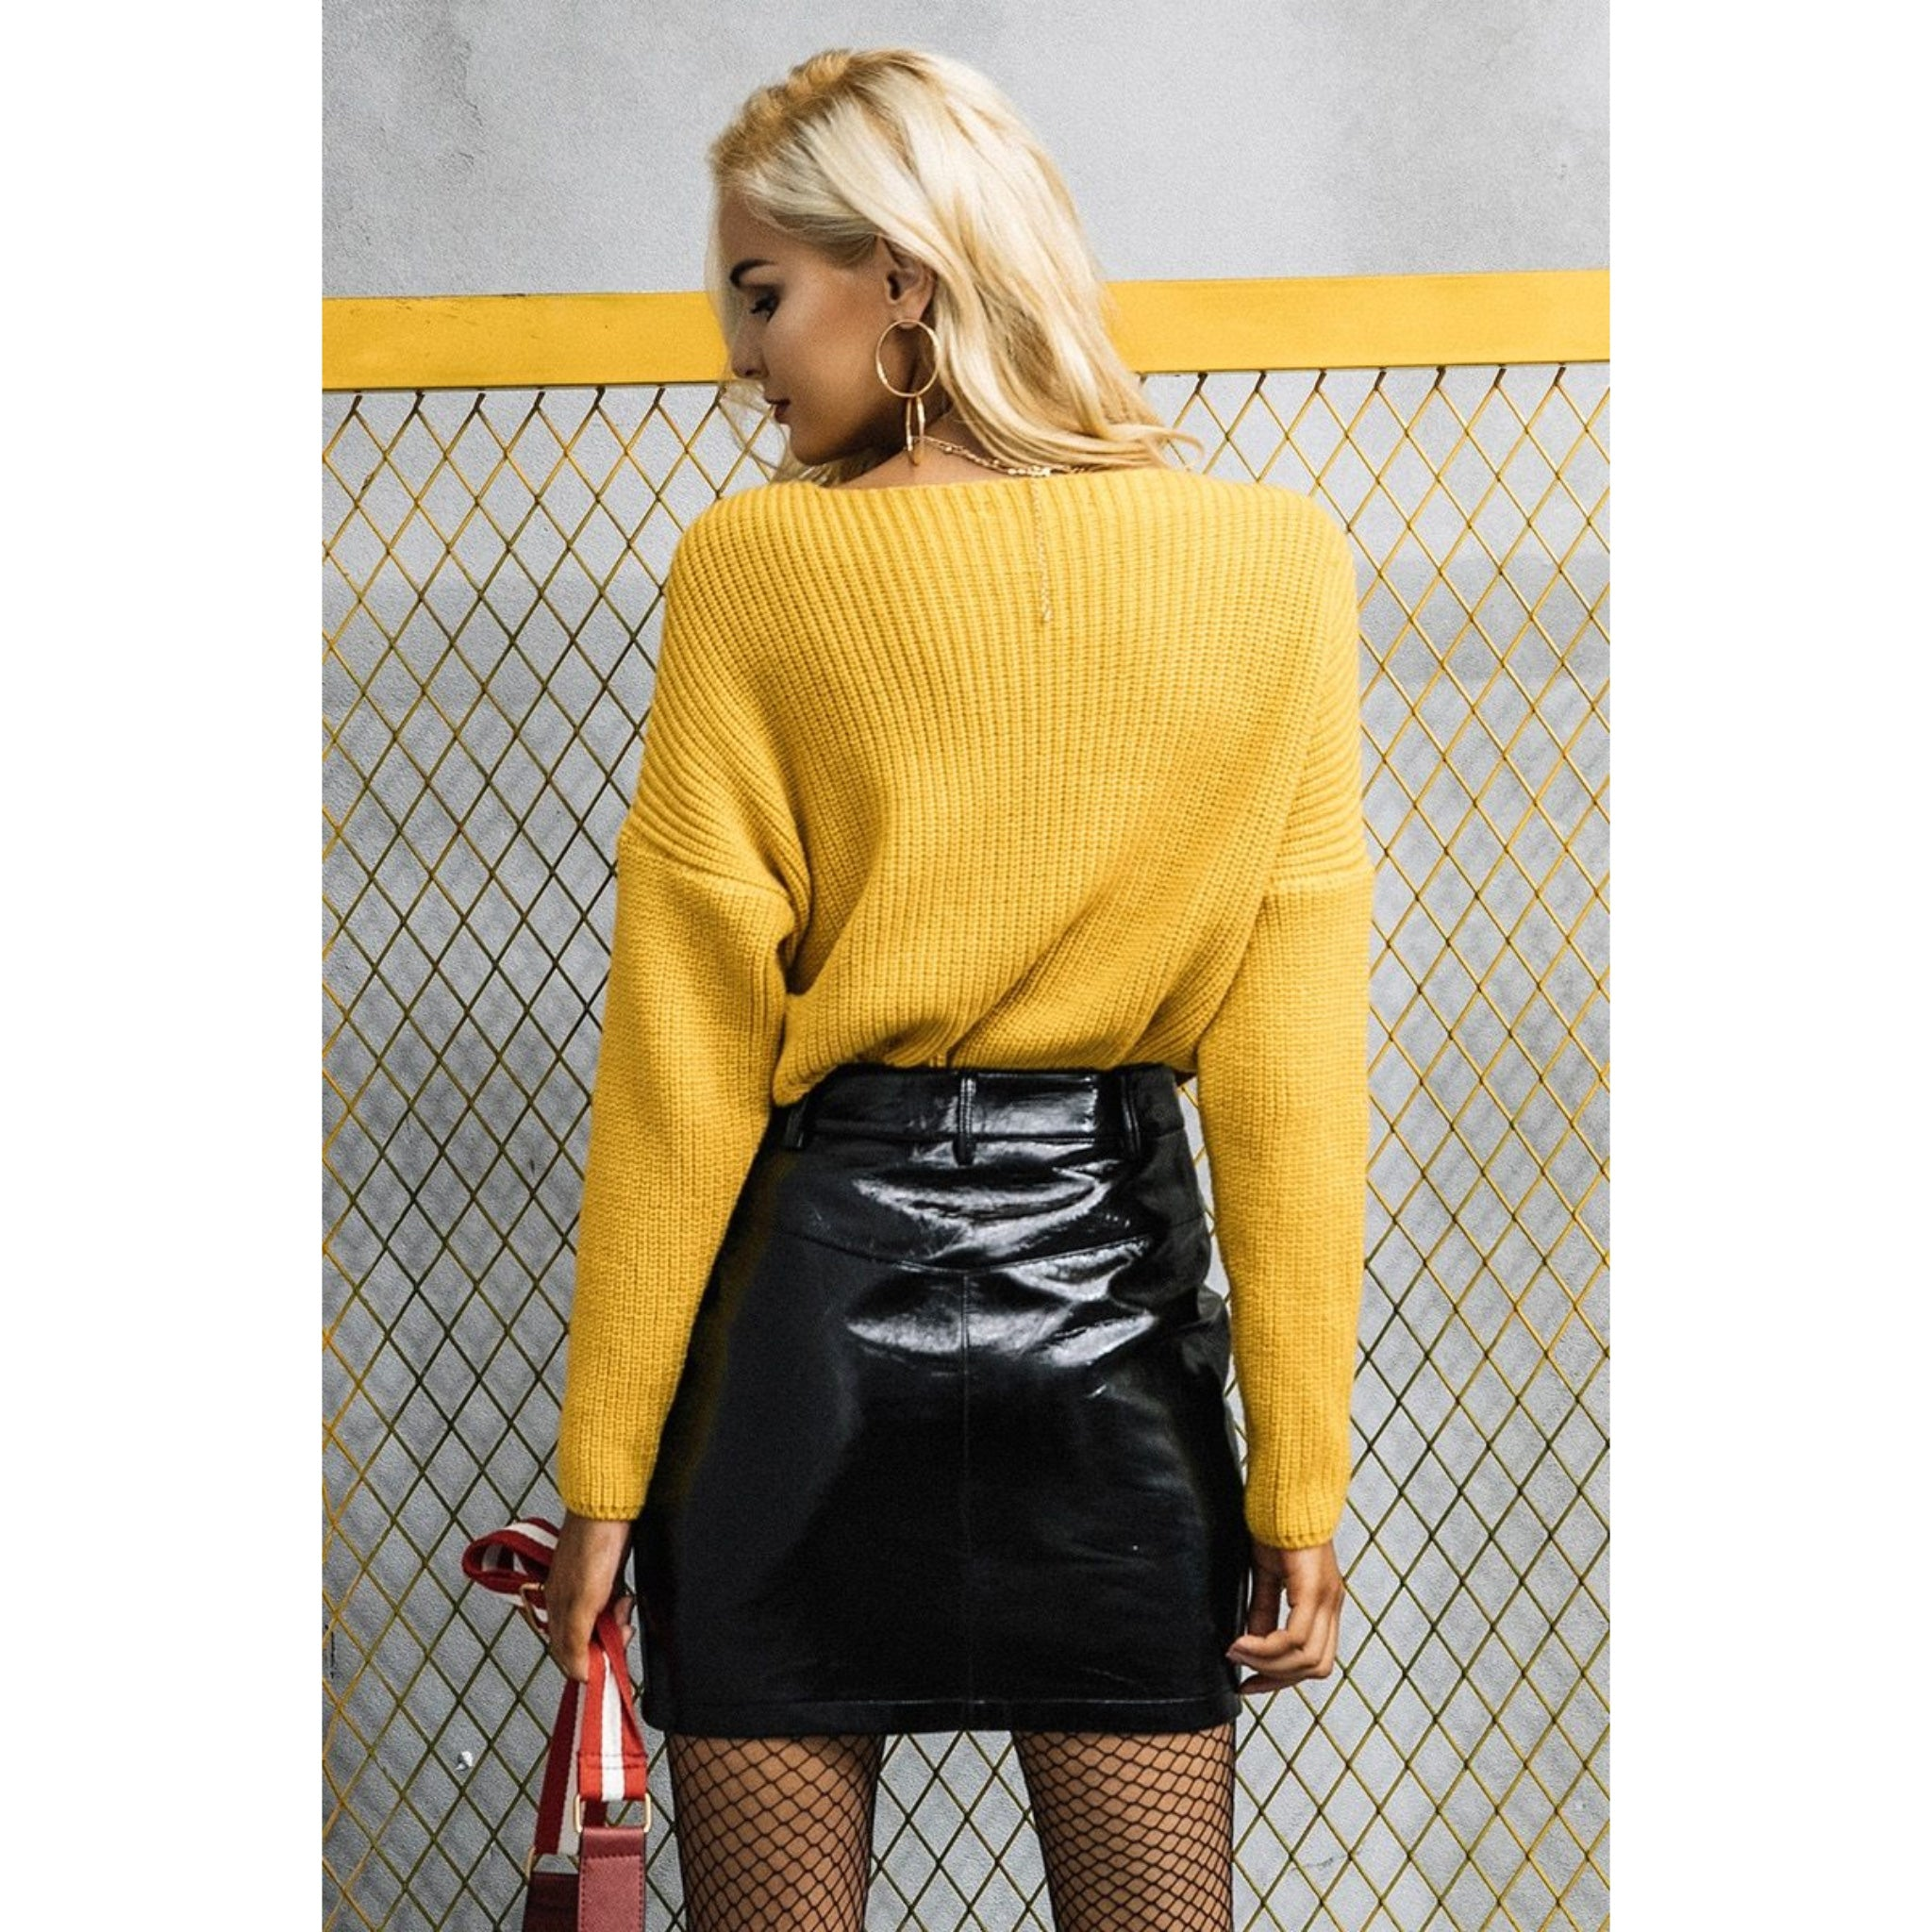 Yellow Knitted Pullover Cross V-neck Sweater with Long Sleeves